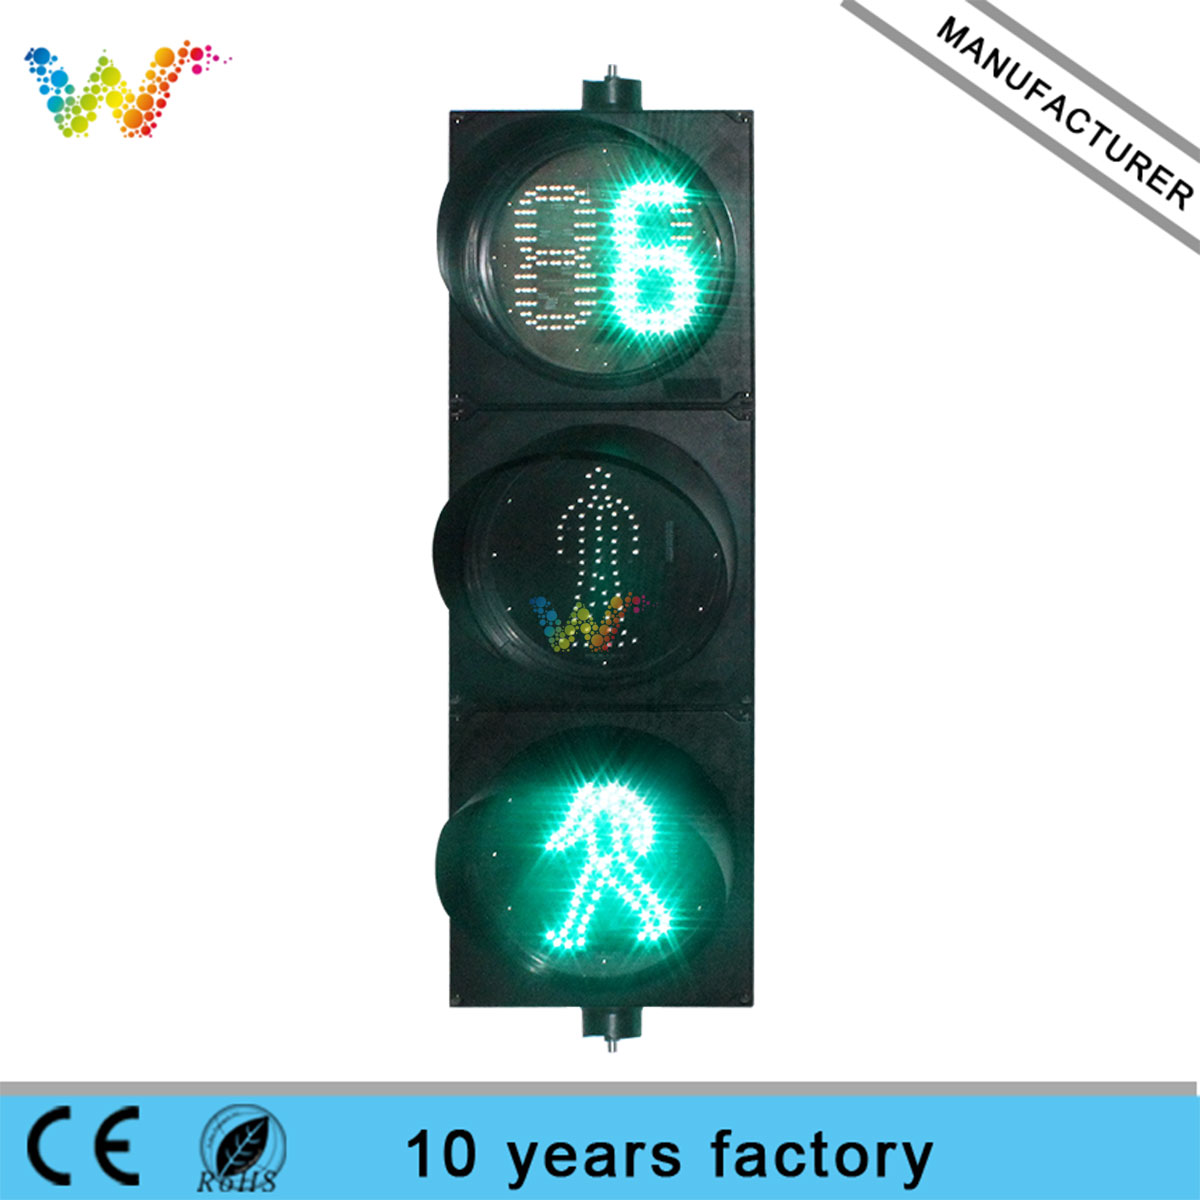 300mm pedestrian countdown timer traffic light